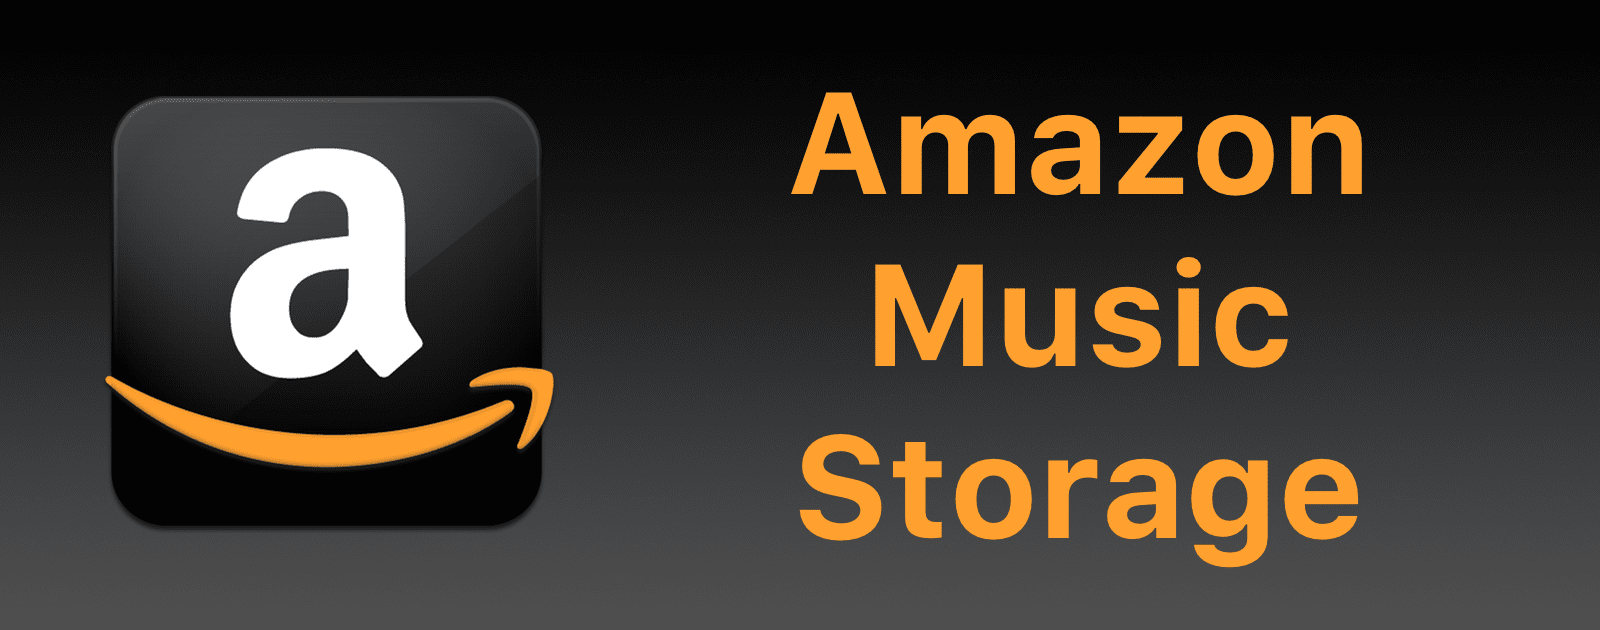 Amazon Music Storage is Ending, Here's What You Can Do - The